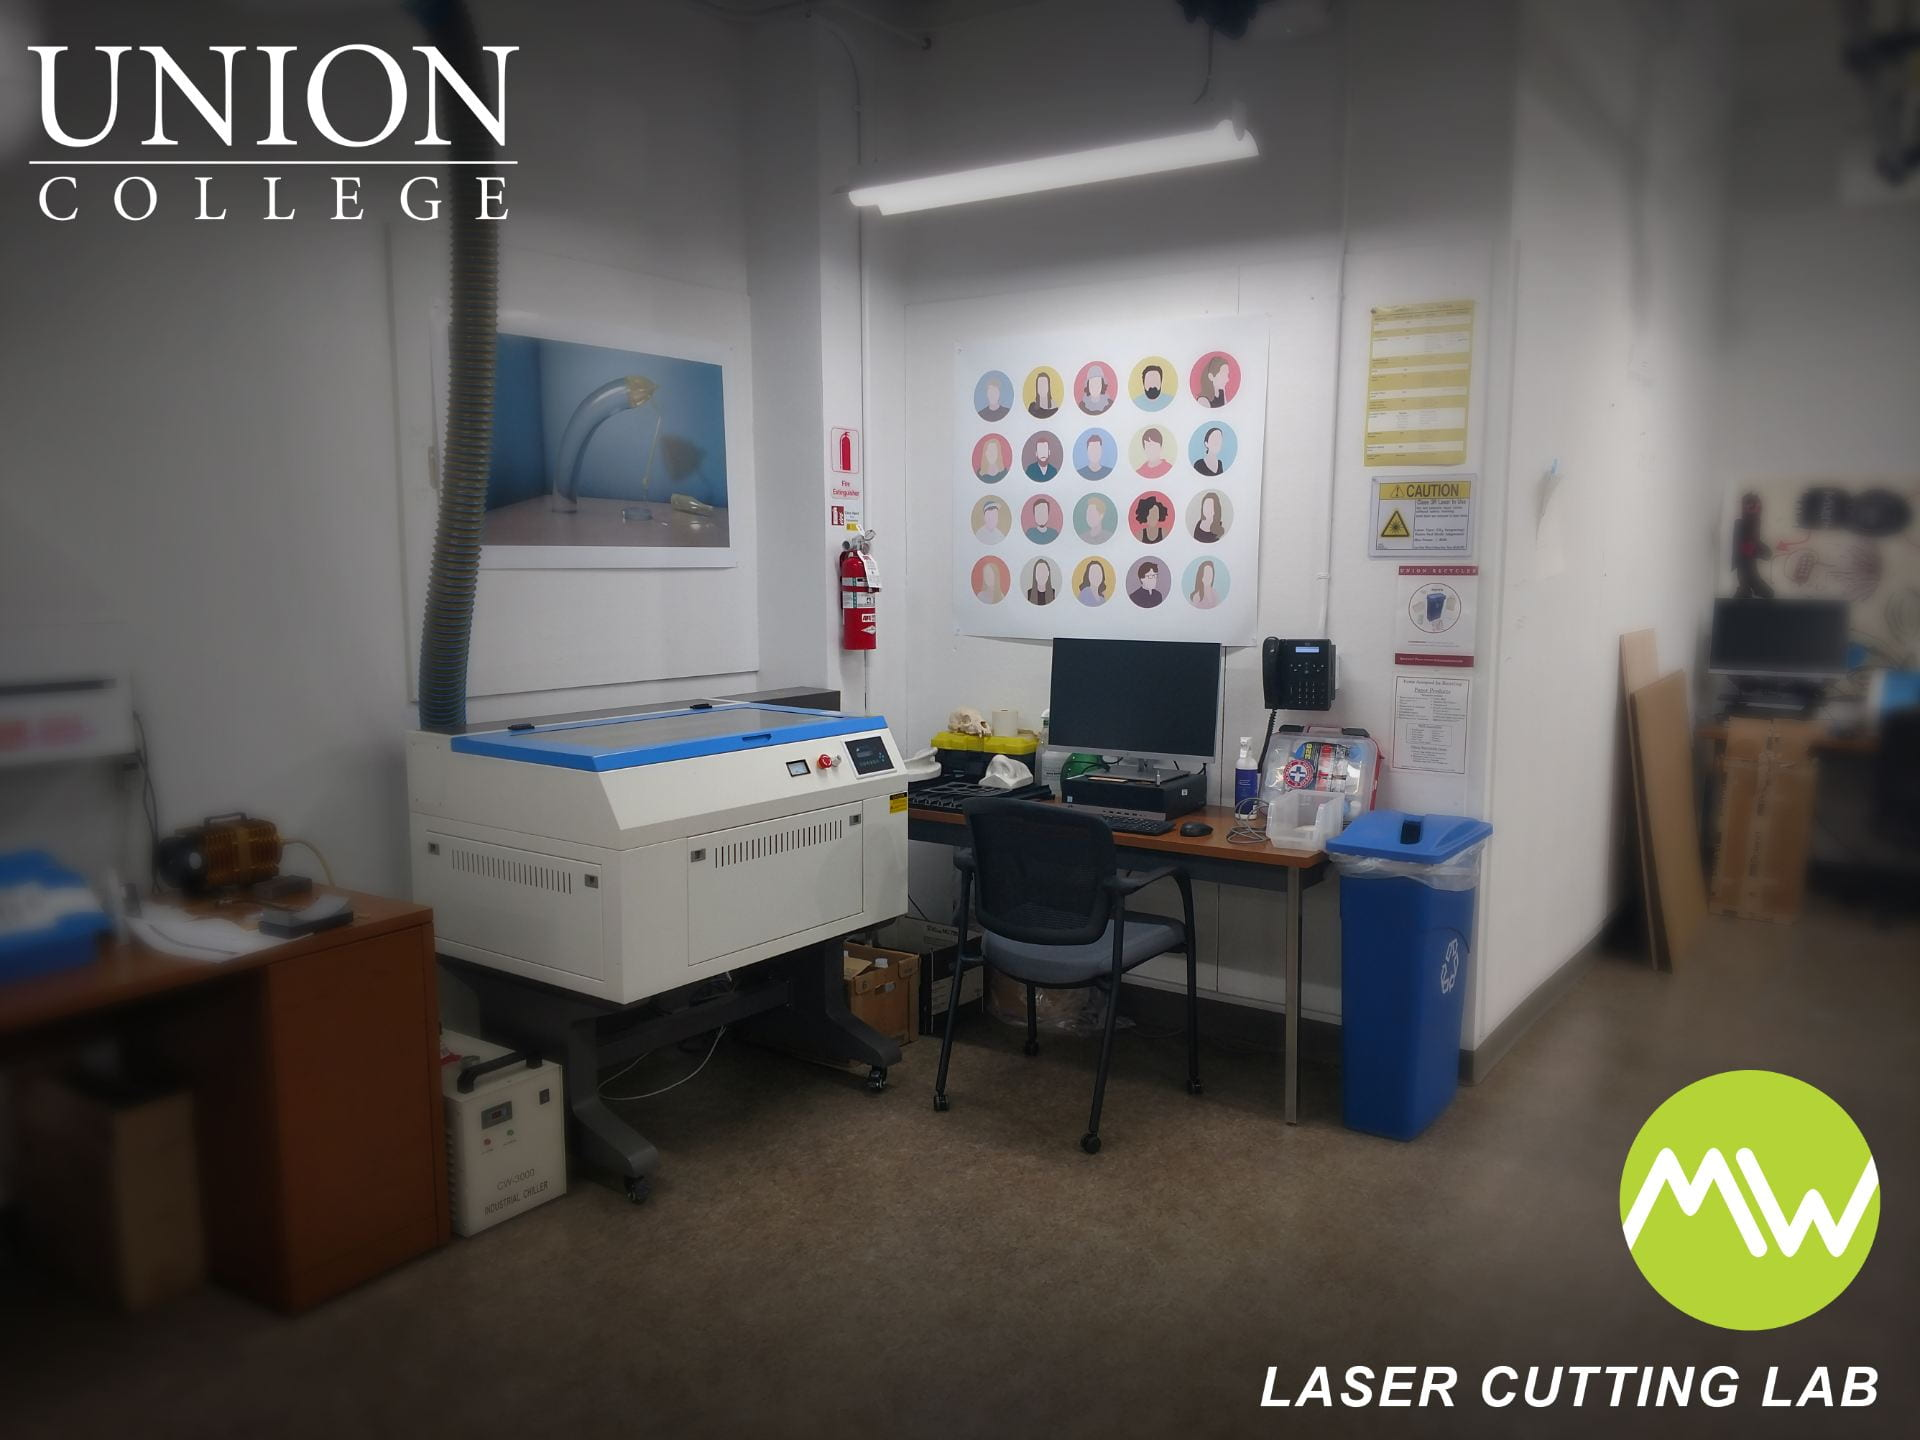 Laser Cutting Lab